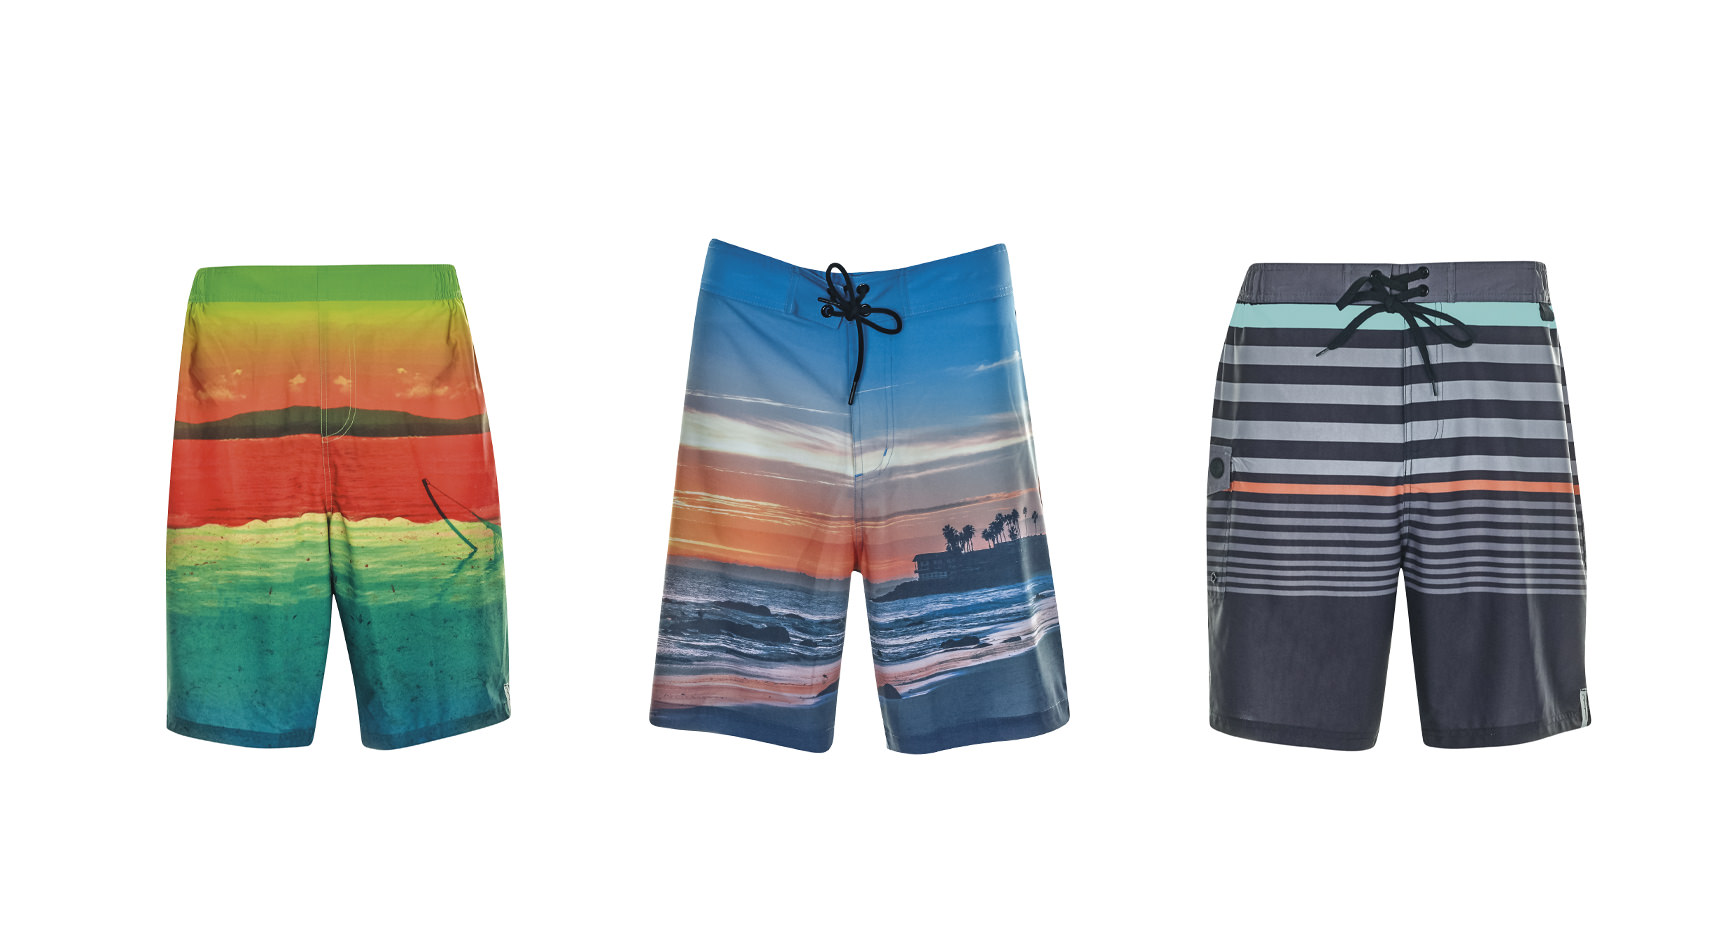 So many swim shorts – the choice is yours